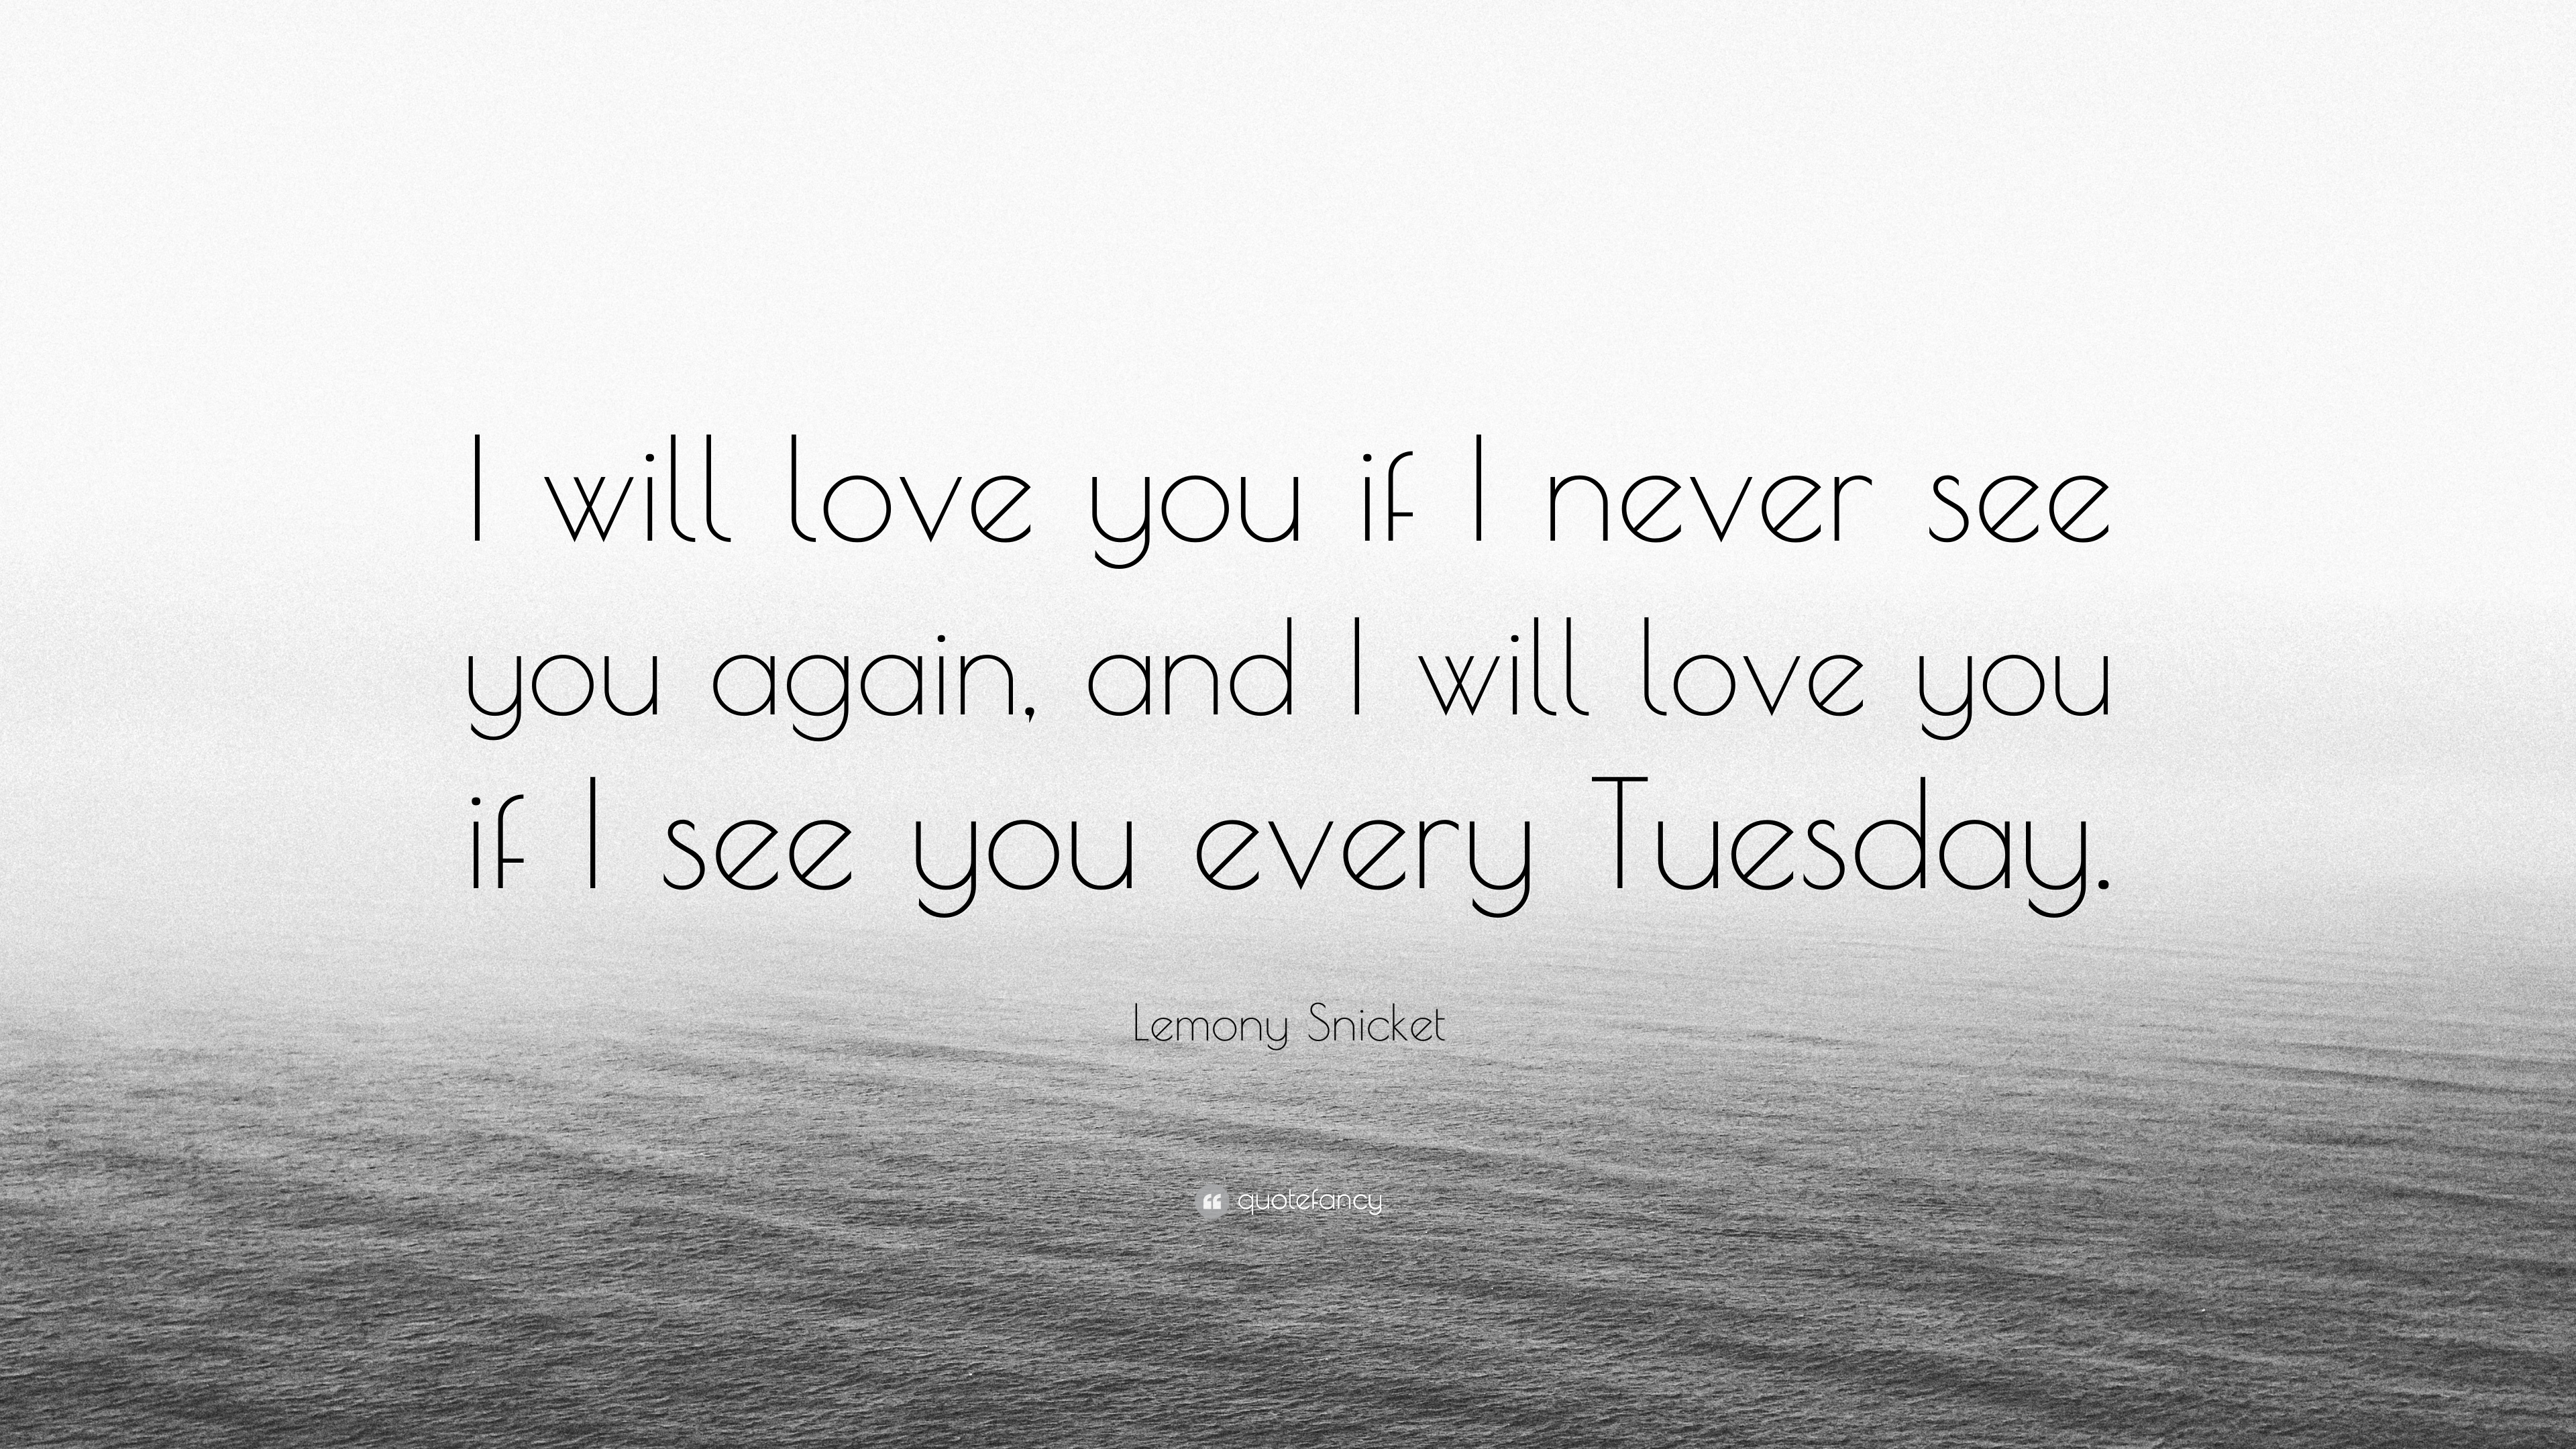 """Lemony Snicket Quote """"I will love you if I never see you again"""